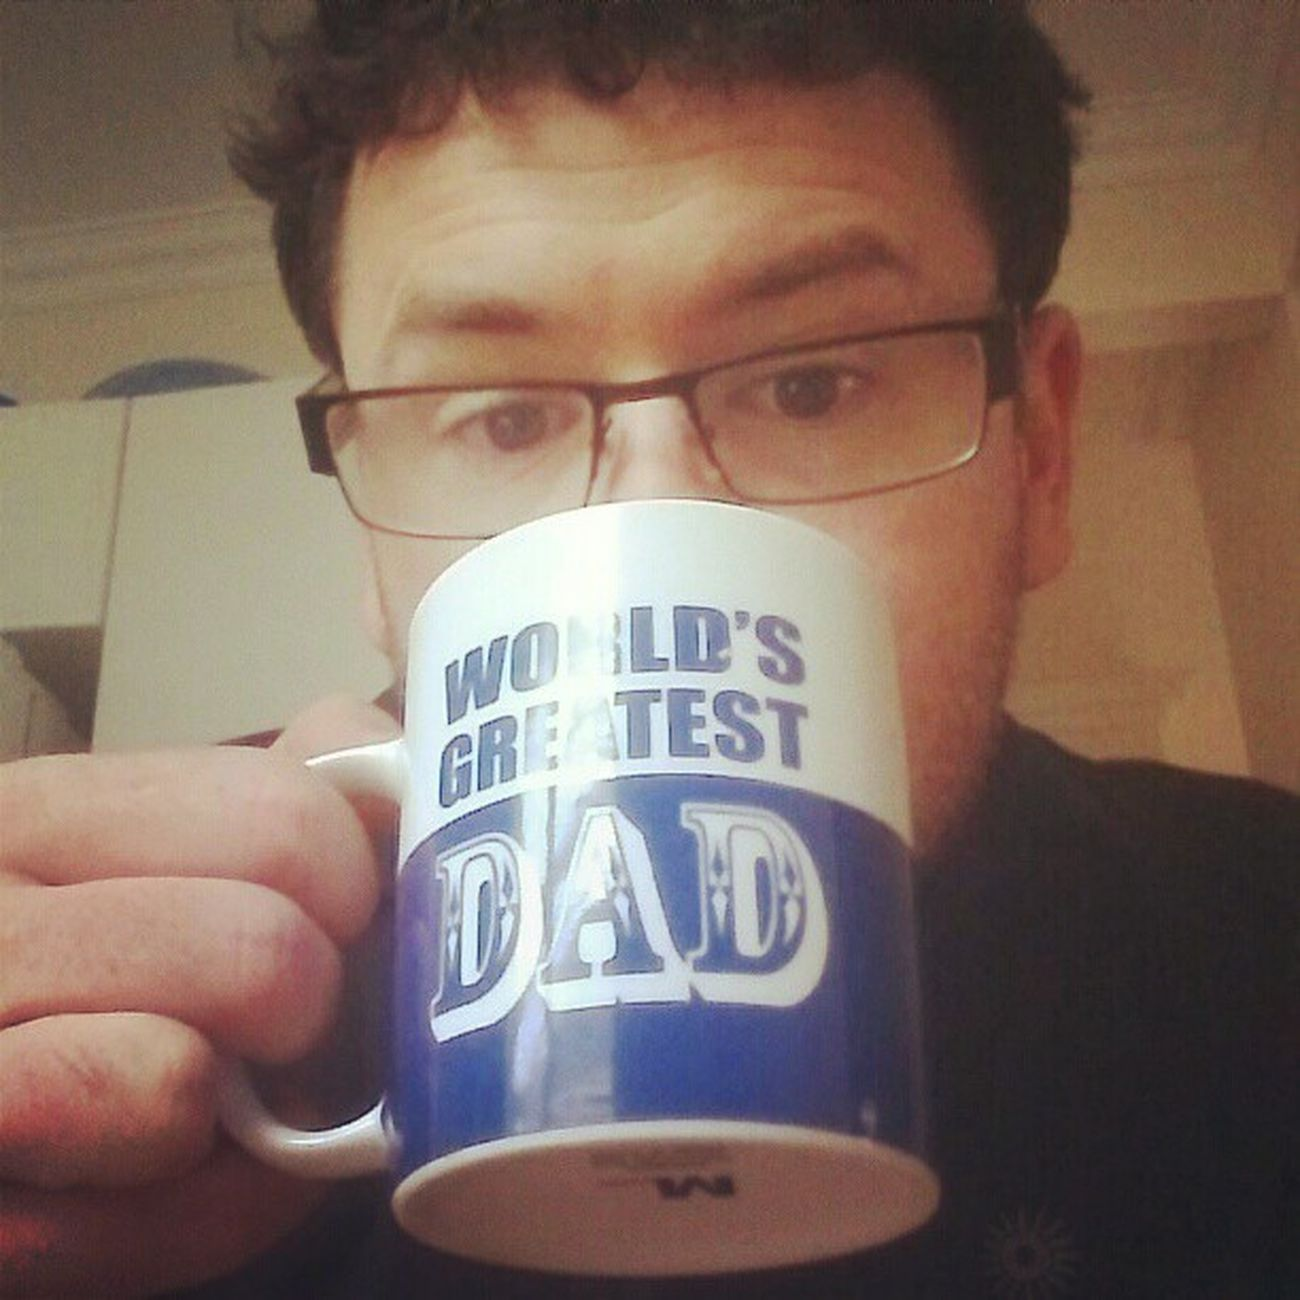 Happy Sunday fuckers,now go to your room and get off my lawn. Teambadassmug